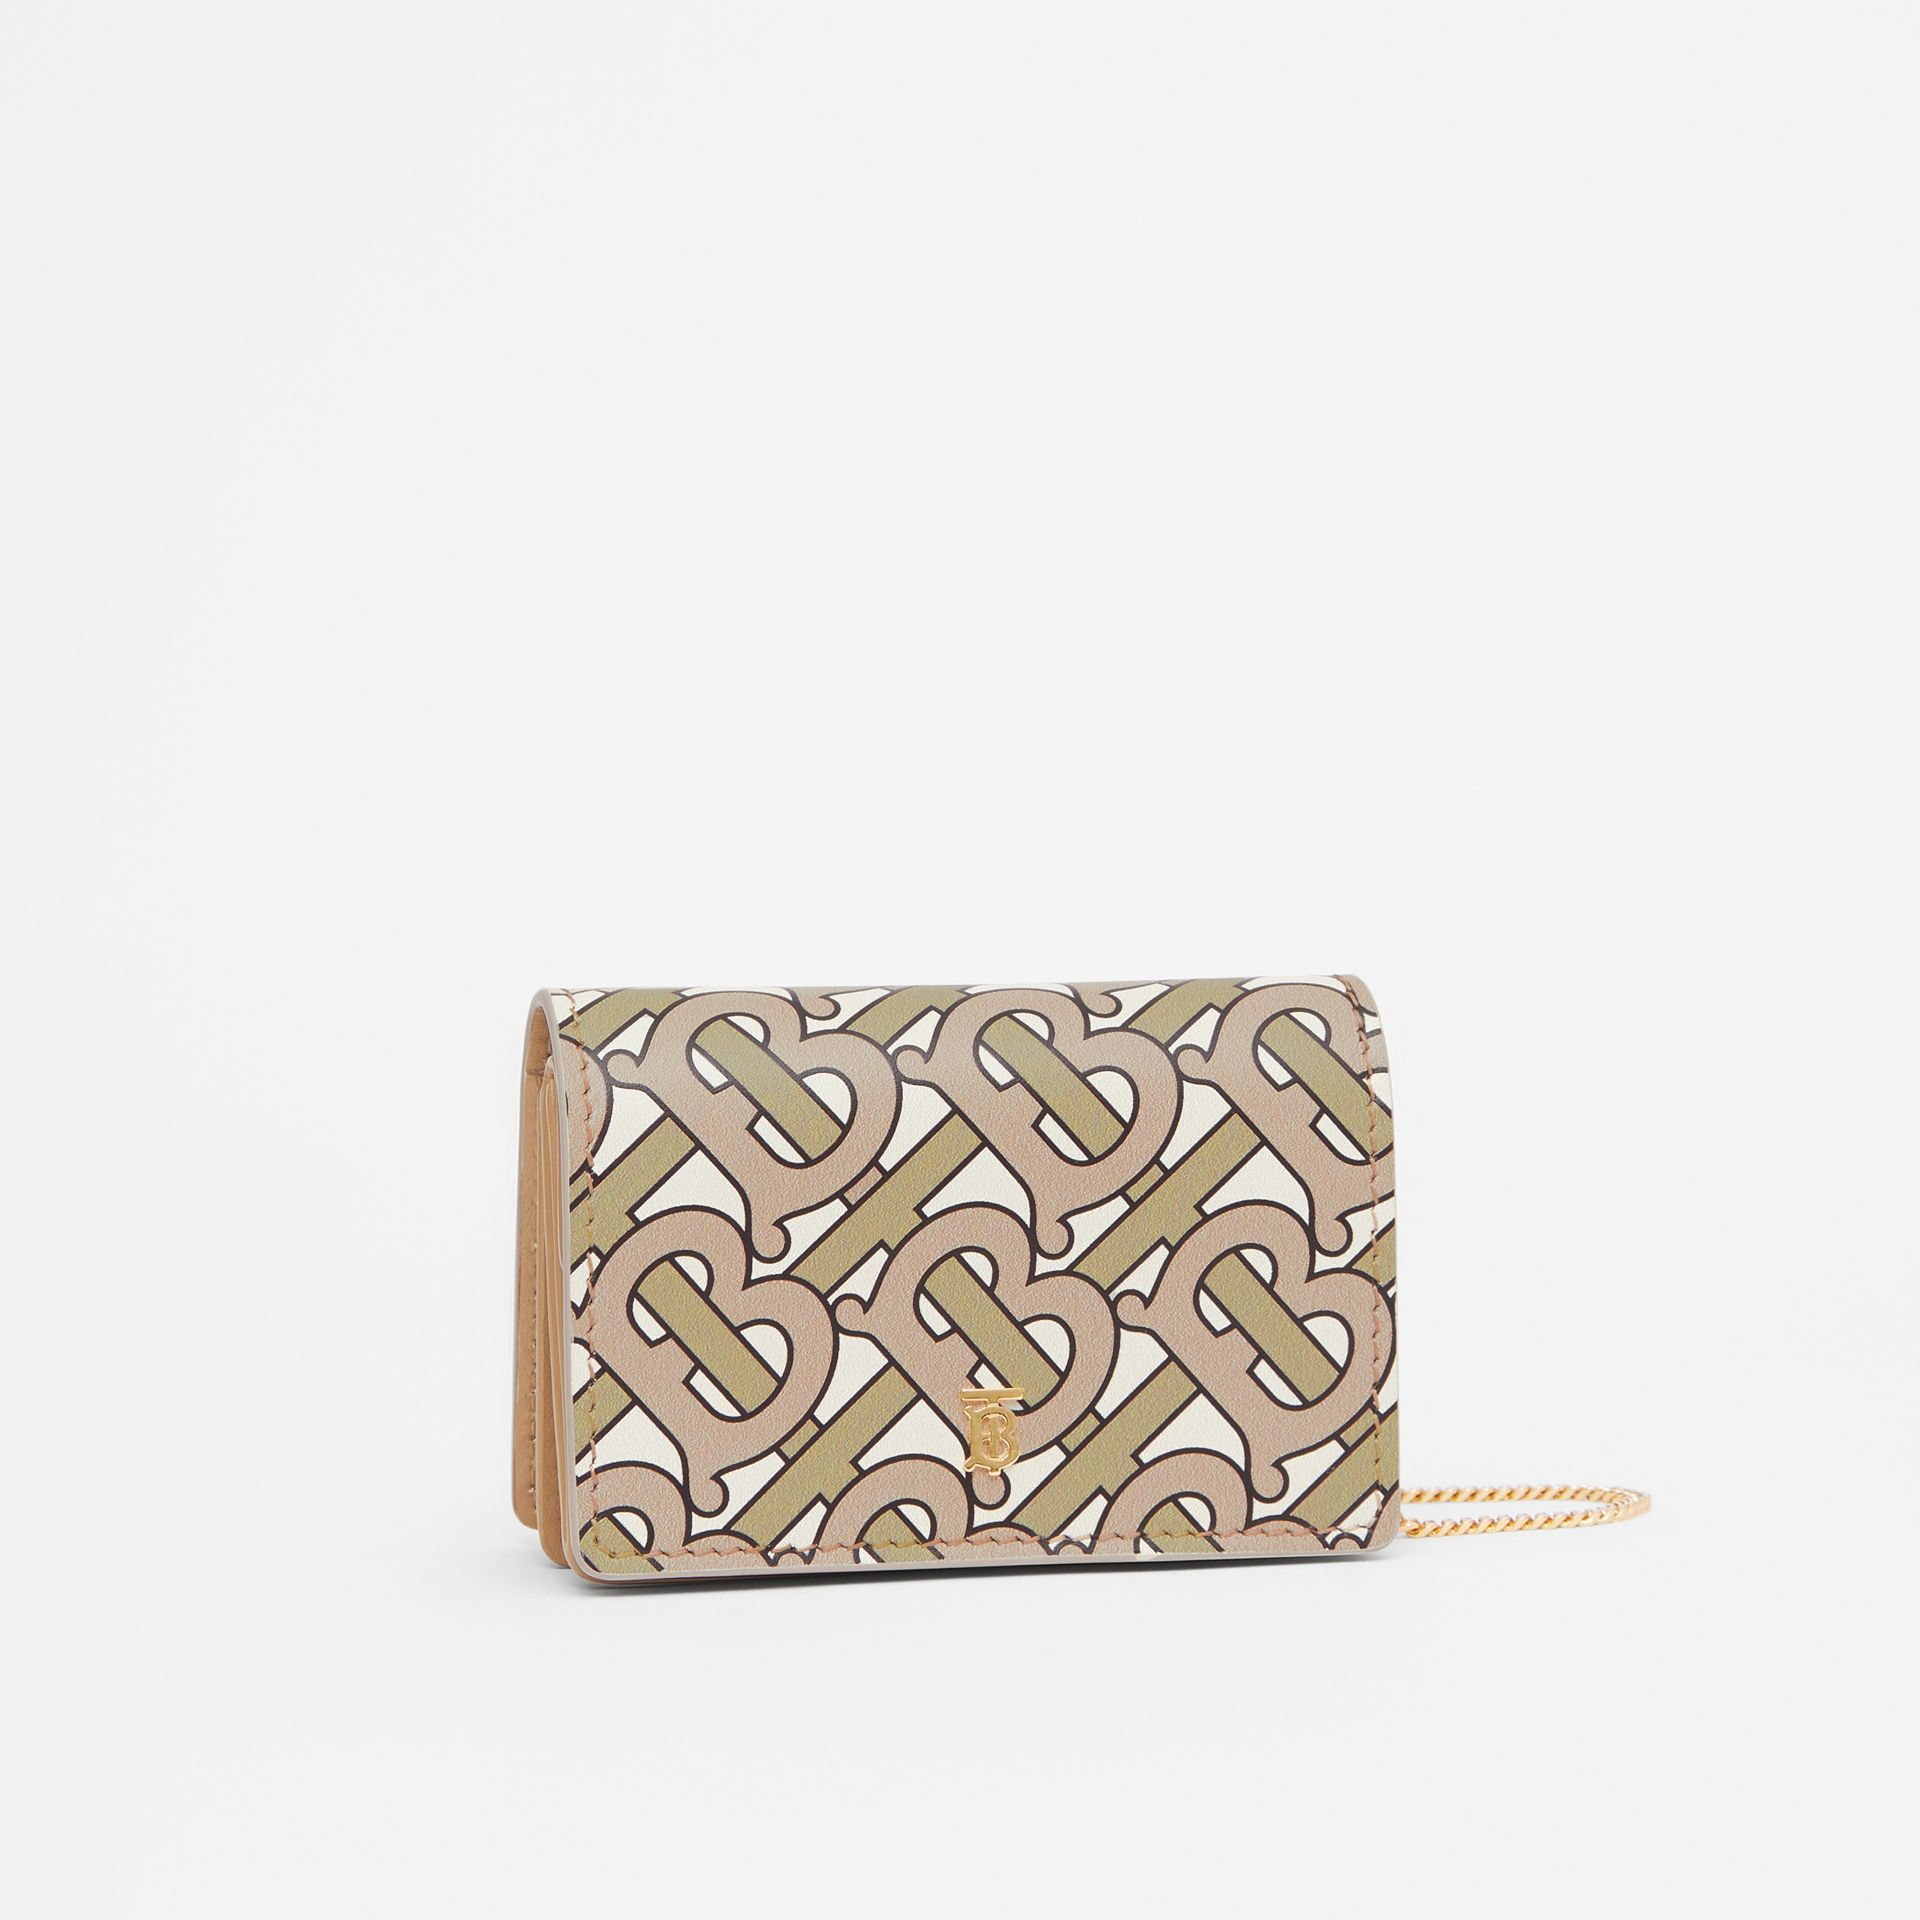 Monogram Print Card Case with Detachable Strap in Beige - Women | Burberry Singapore - gallery image 6